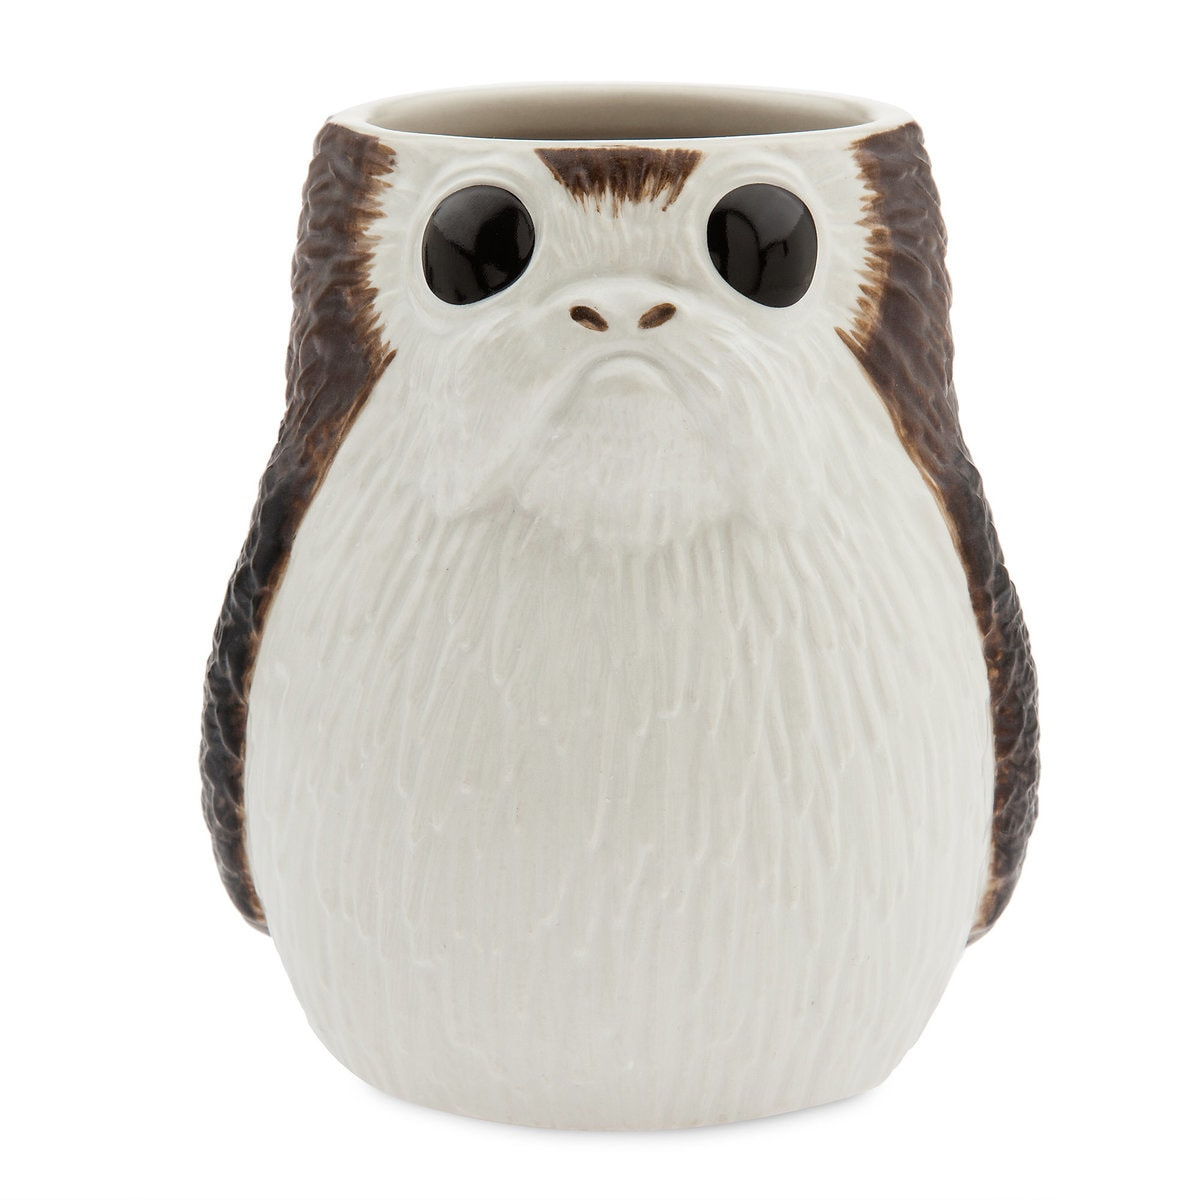 Star Wars: The Last Jedi 24-oz. Ceramic Porg Mug